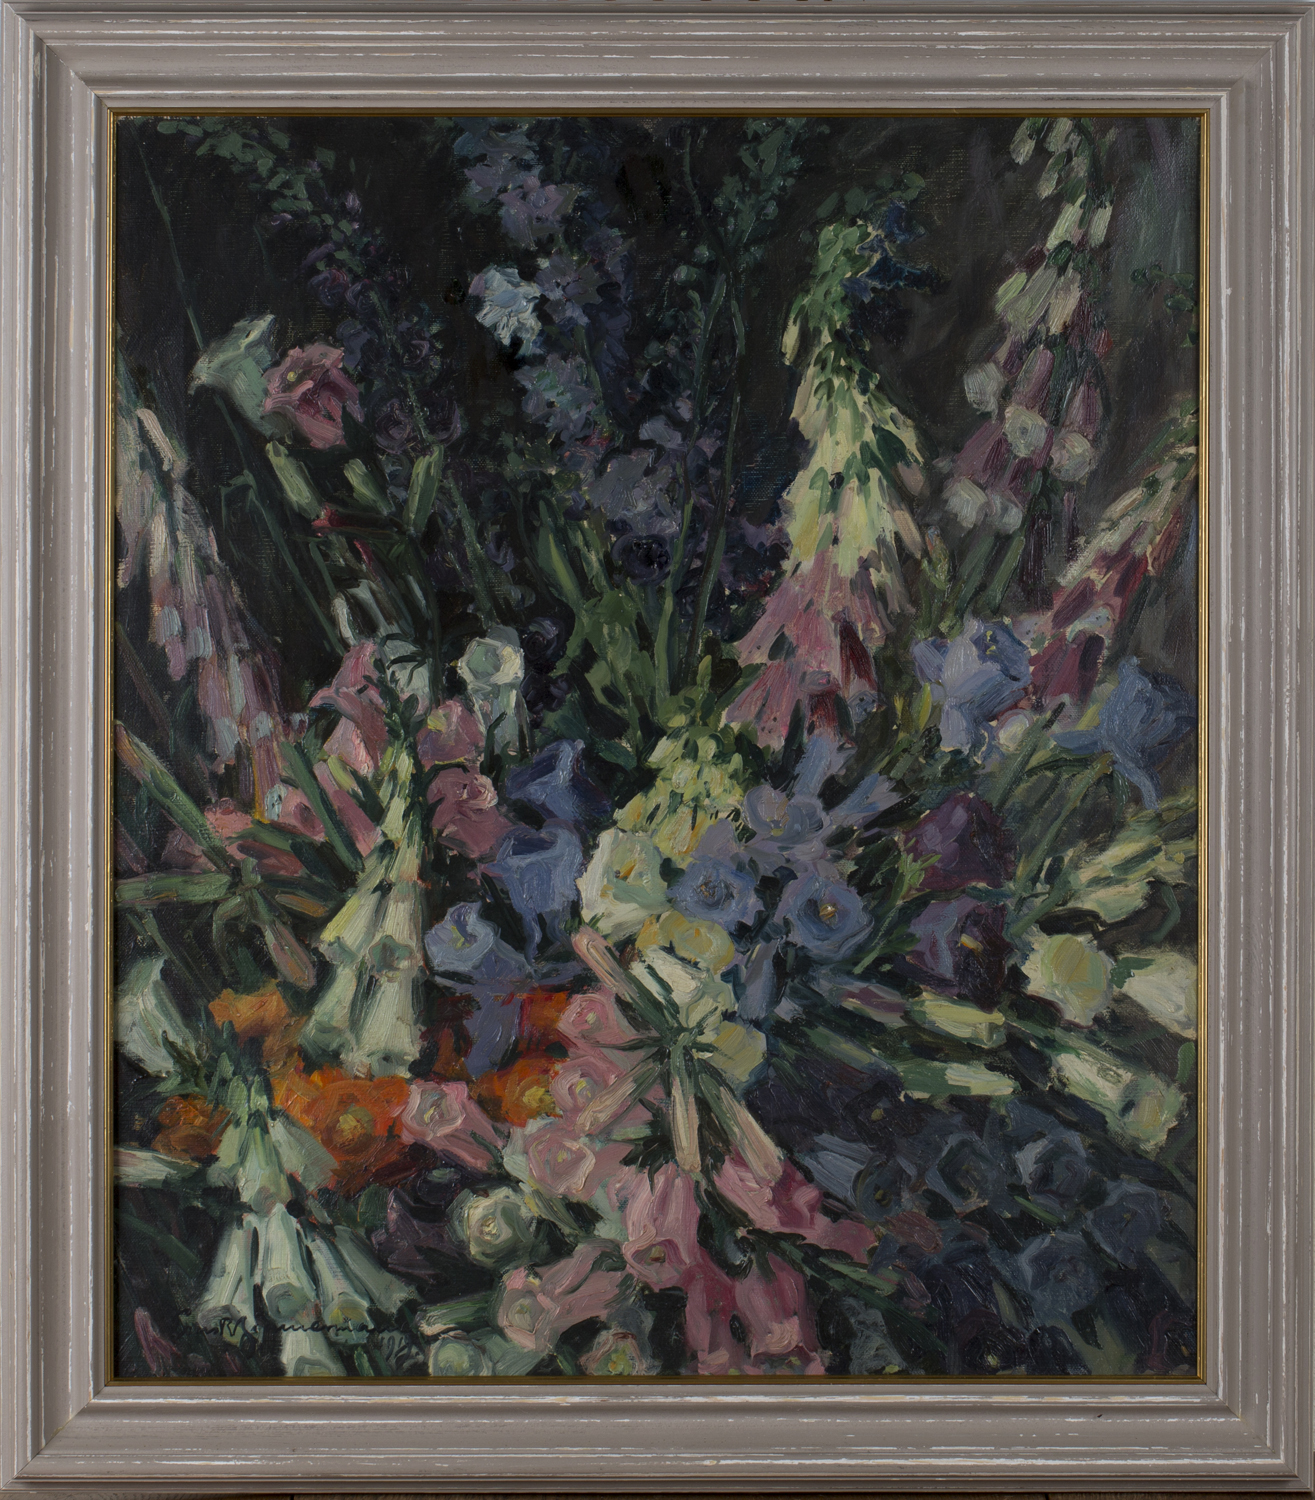 Lot 18 - Ernst Reinhard Zimmermann - 'Blumenstück', oil on canvas, signed and dated 1919 recto, titled verso,